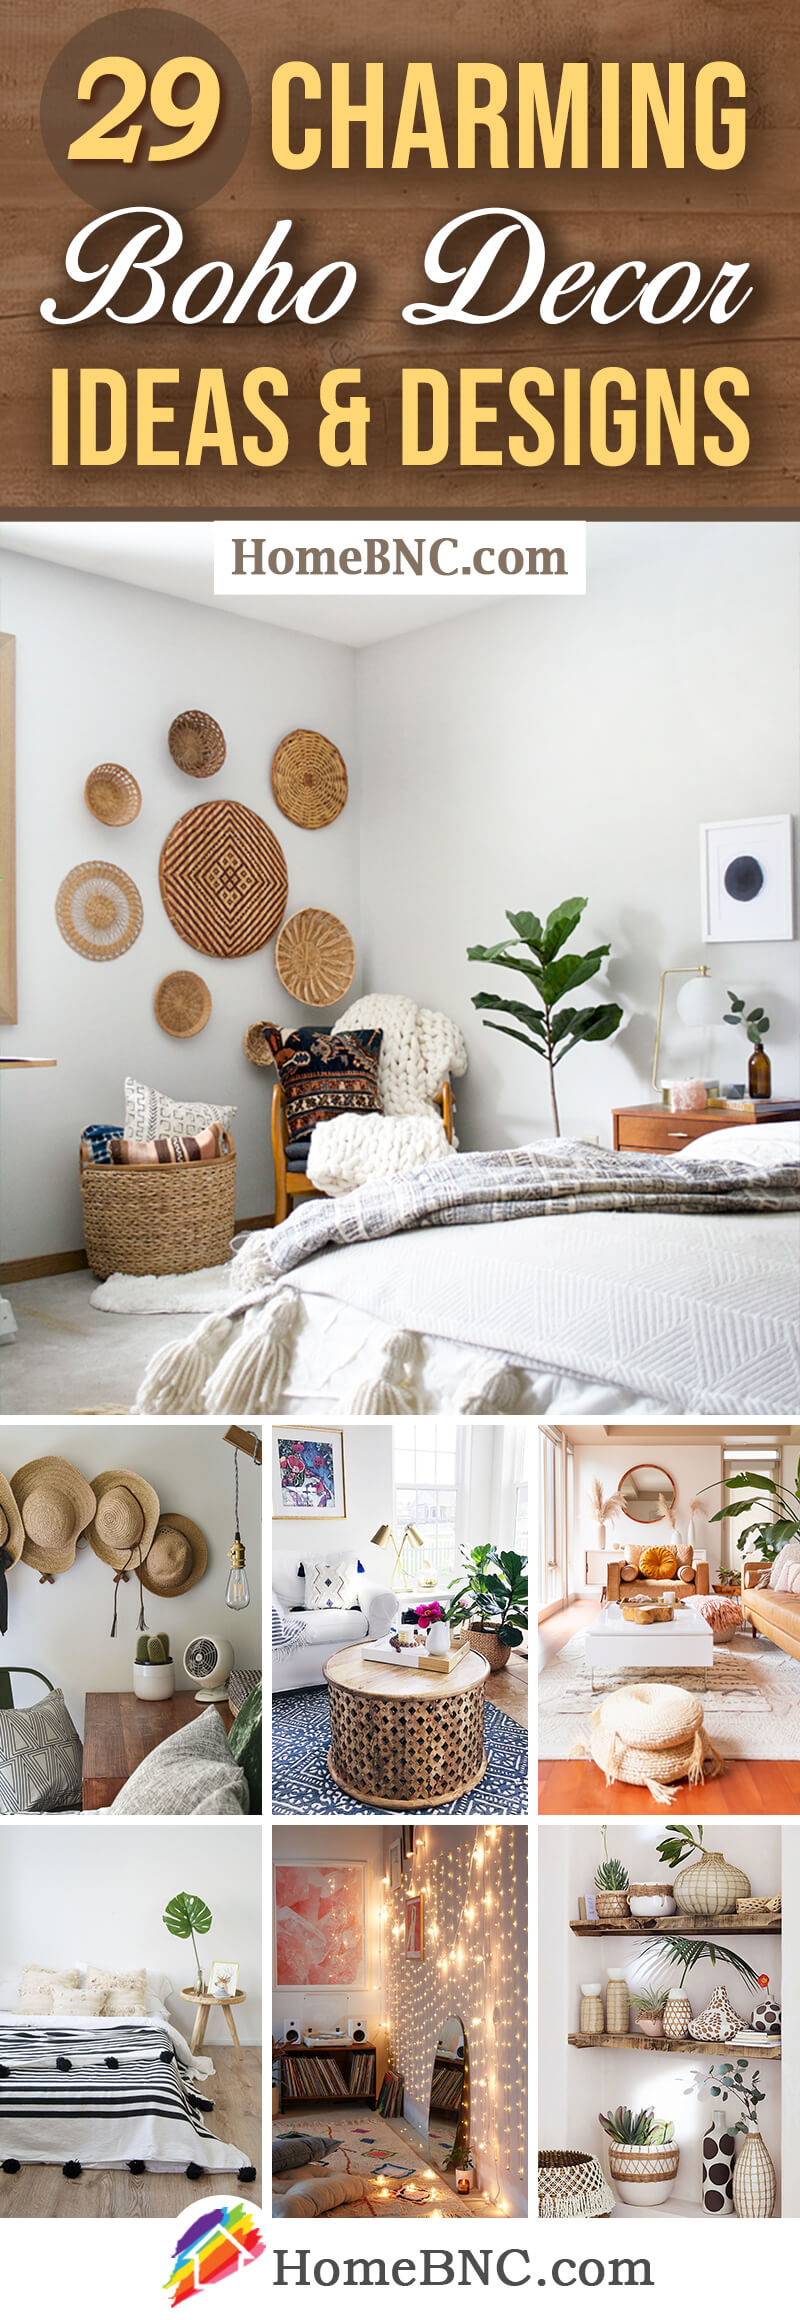 29 Best Boho Decor Ideas And Designs For A Charming Look In 2021